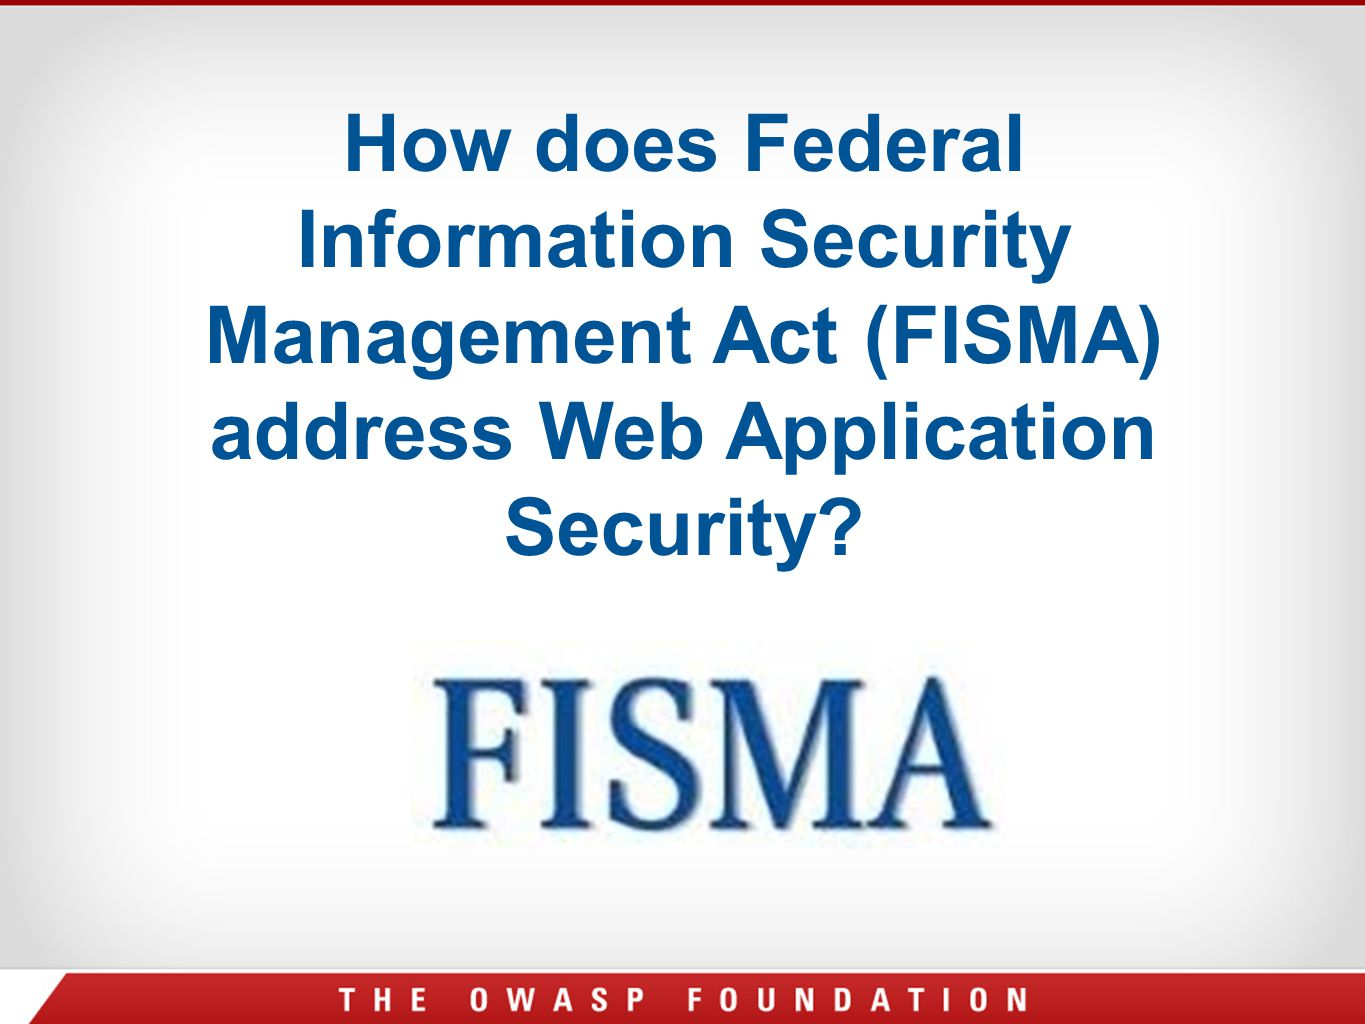 How does Federal Information Security Management Act (FISMA) address Web Application Security?